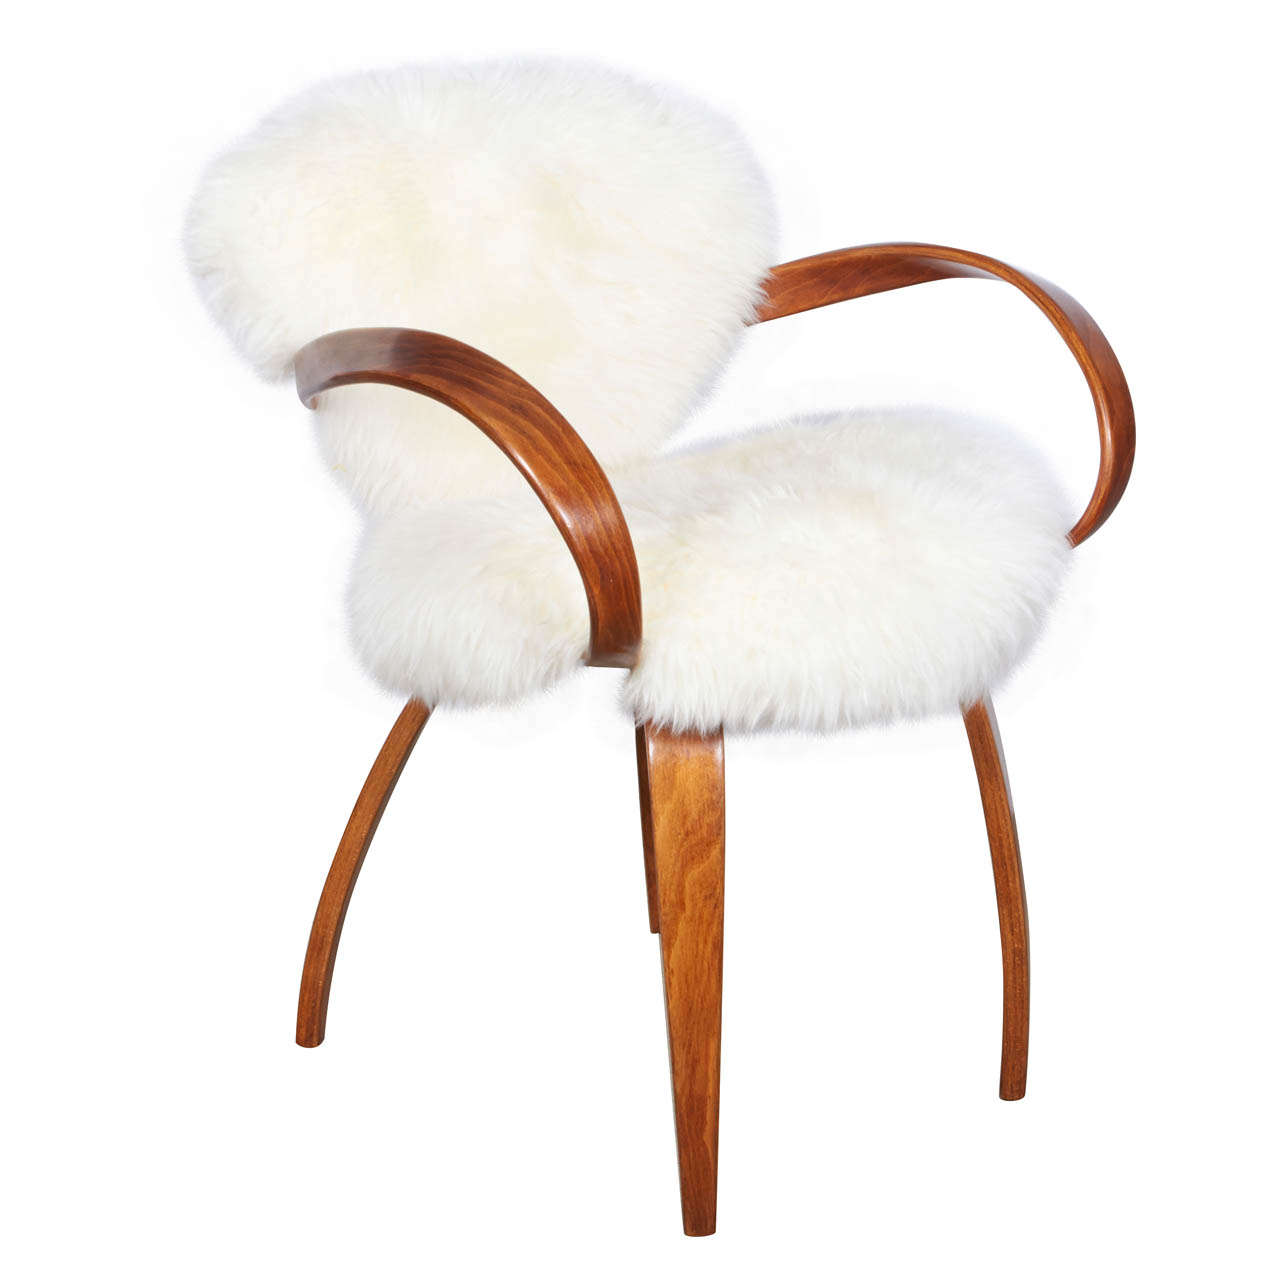 original norman cherner chair for plycraft in silky argentine mongolian goat hide 1